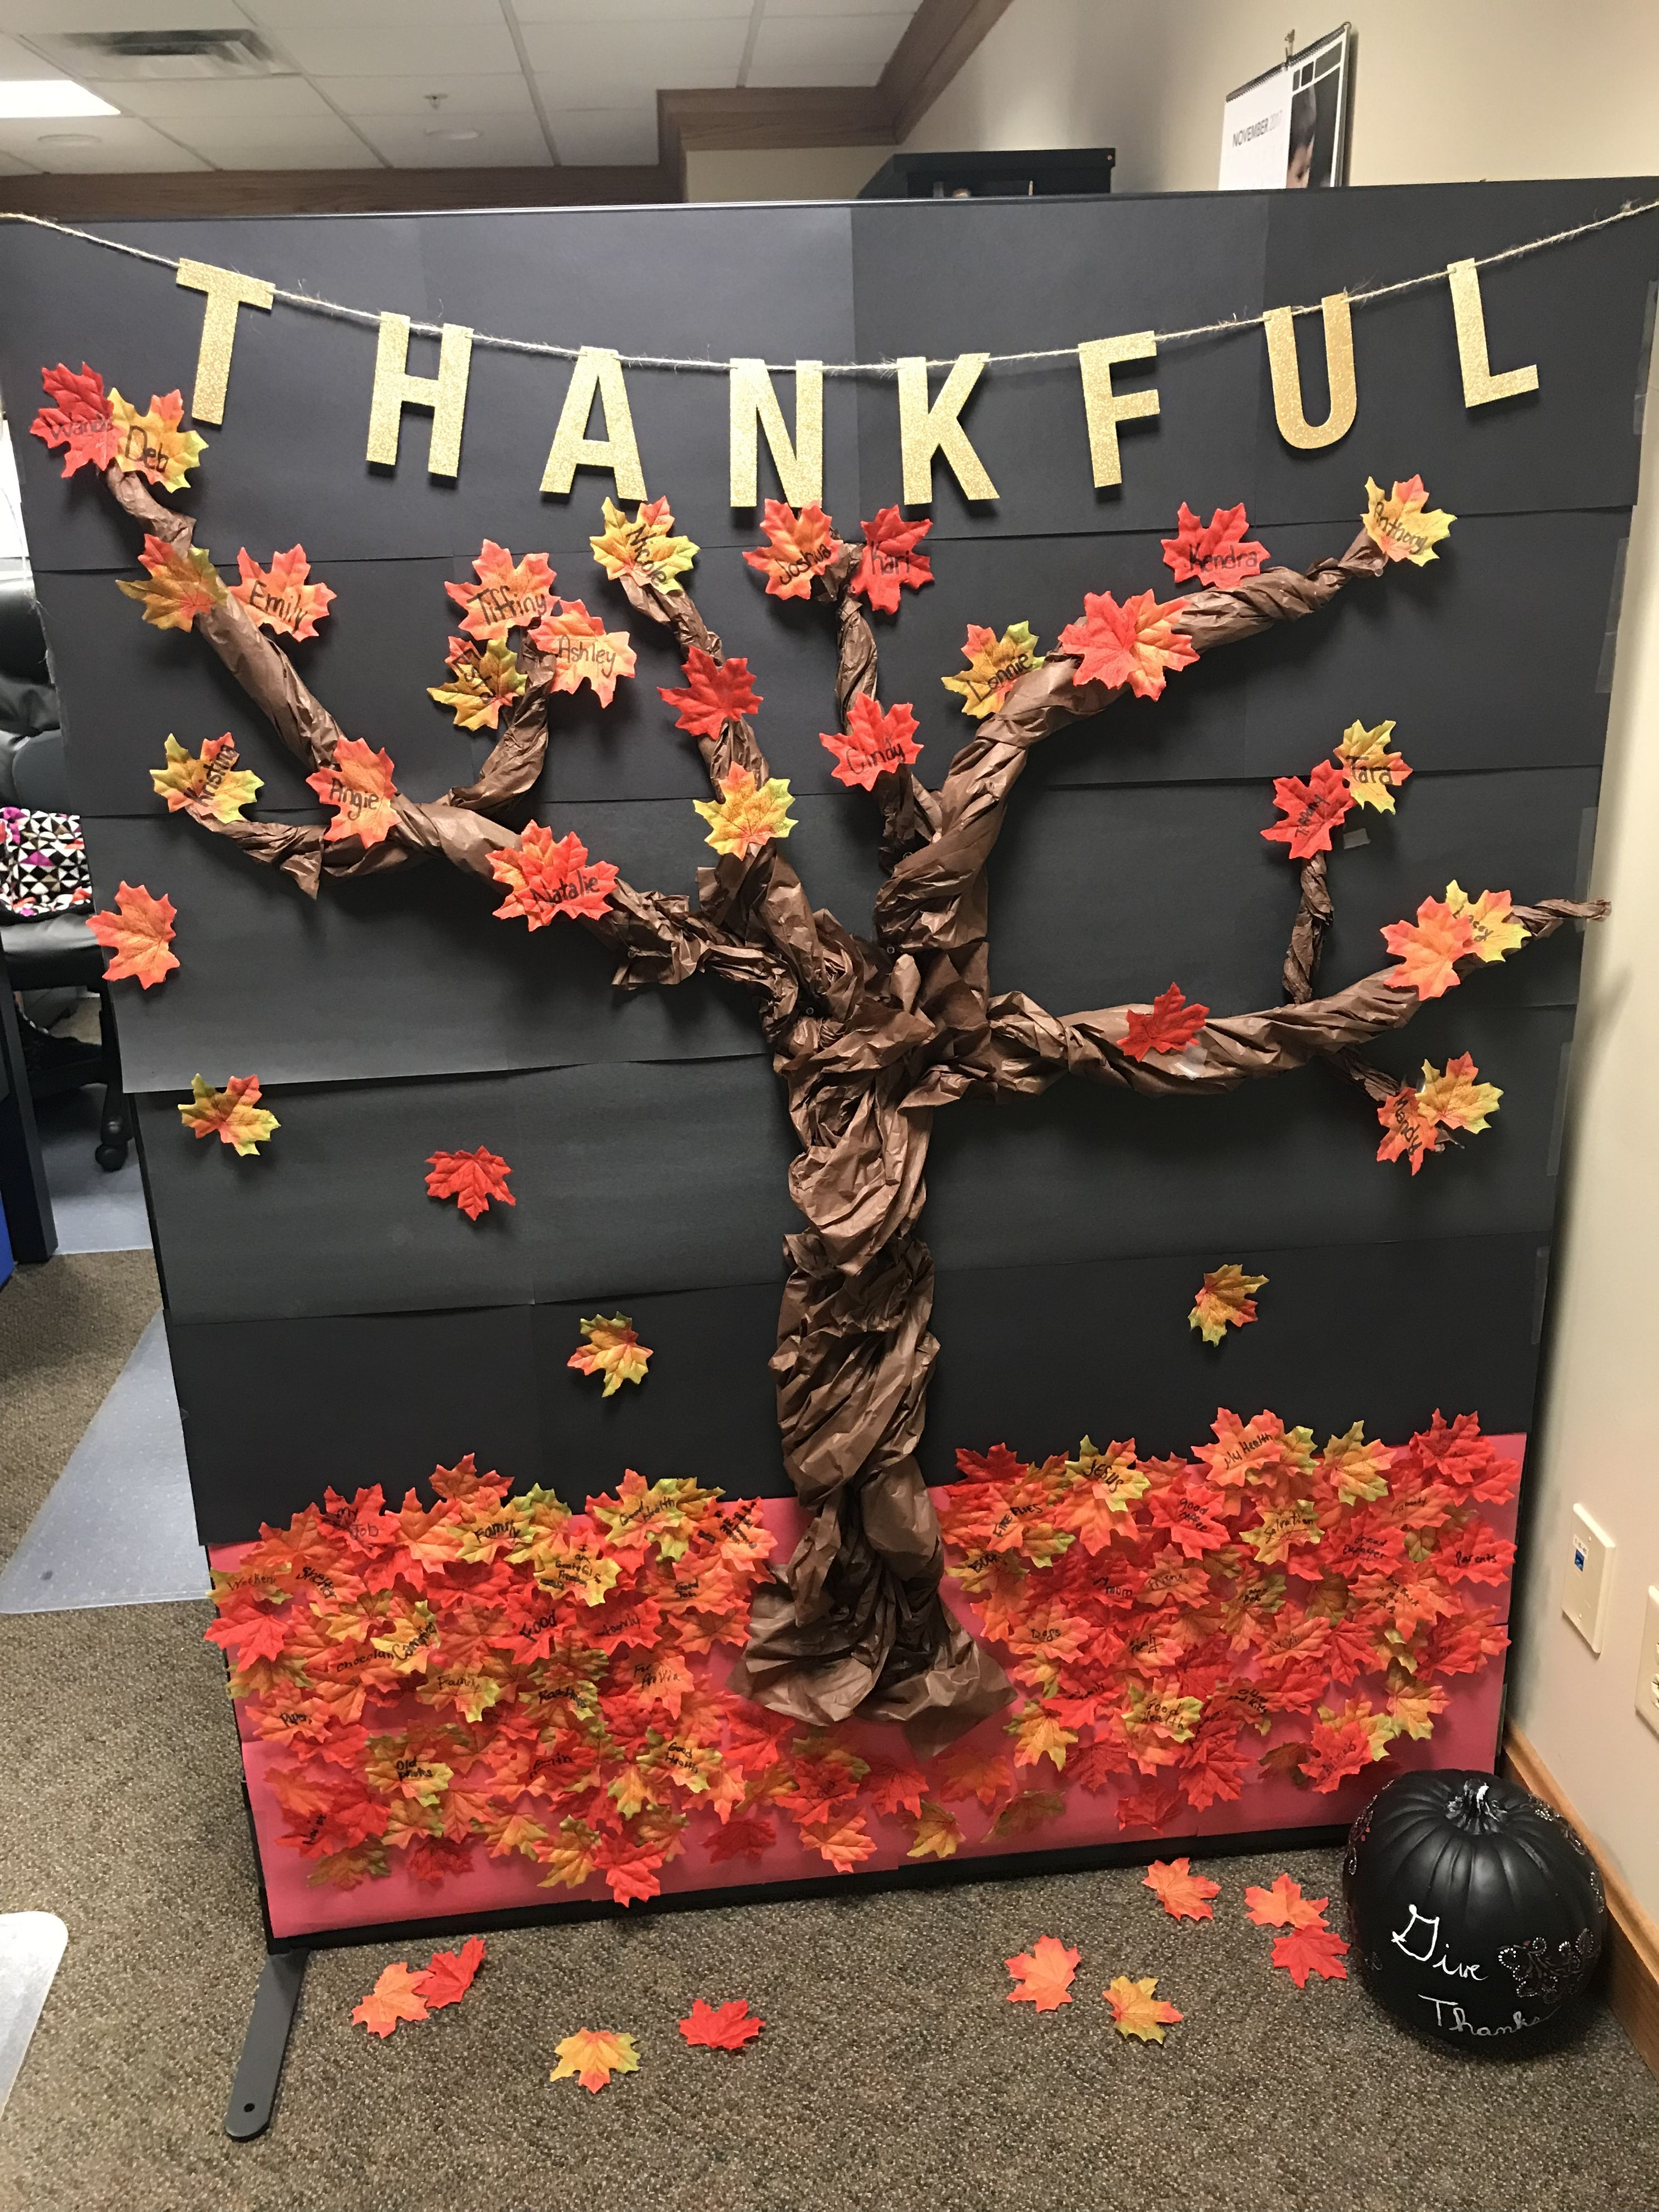 marvellous thanksgiving office decorations | The Thankful Tree | Thankful tree, Fall decor, Office decor